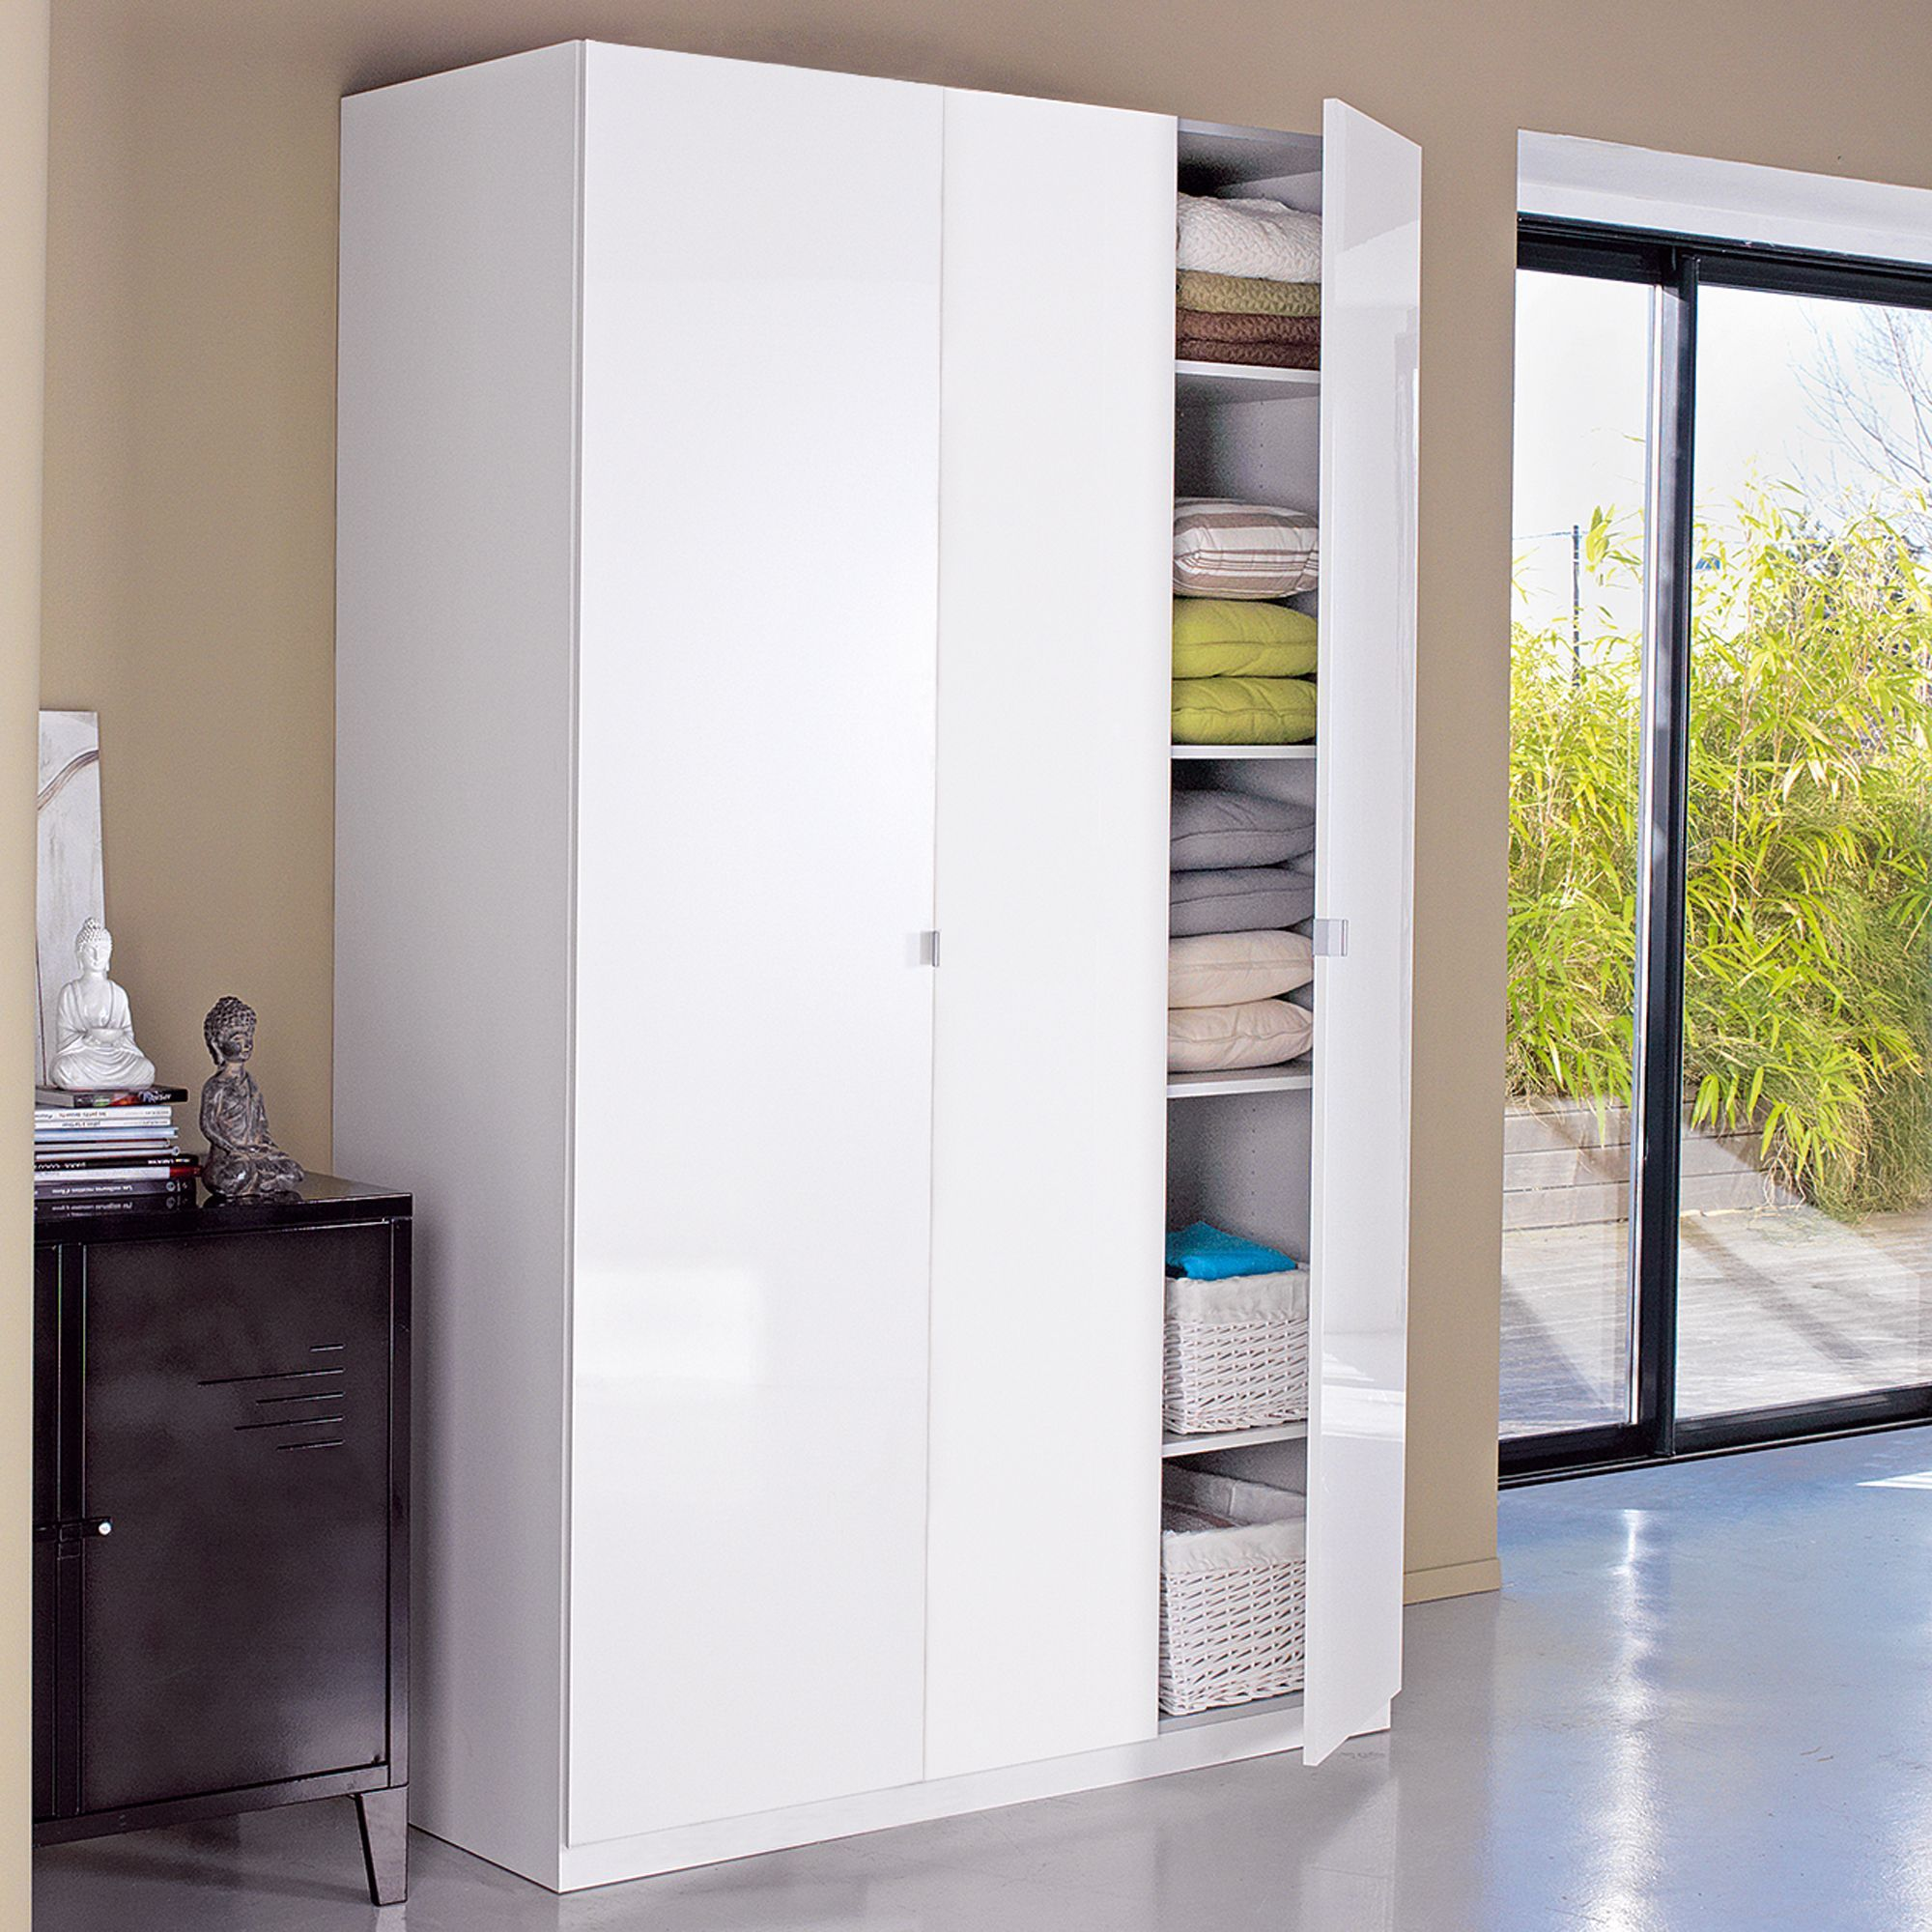 Alinea Dressing Altea Armoire Dressing 3 Portes Battantes 150cm Blanc Dressing Altea